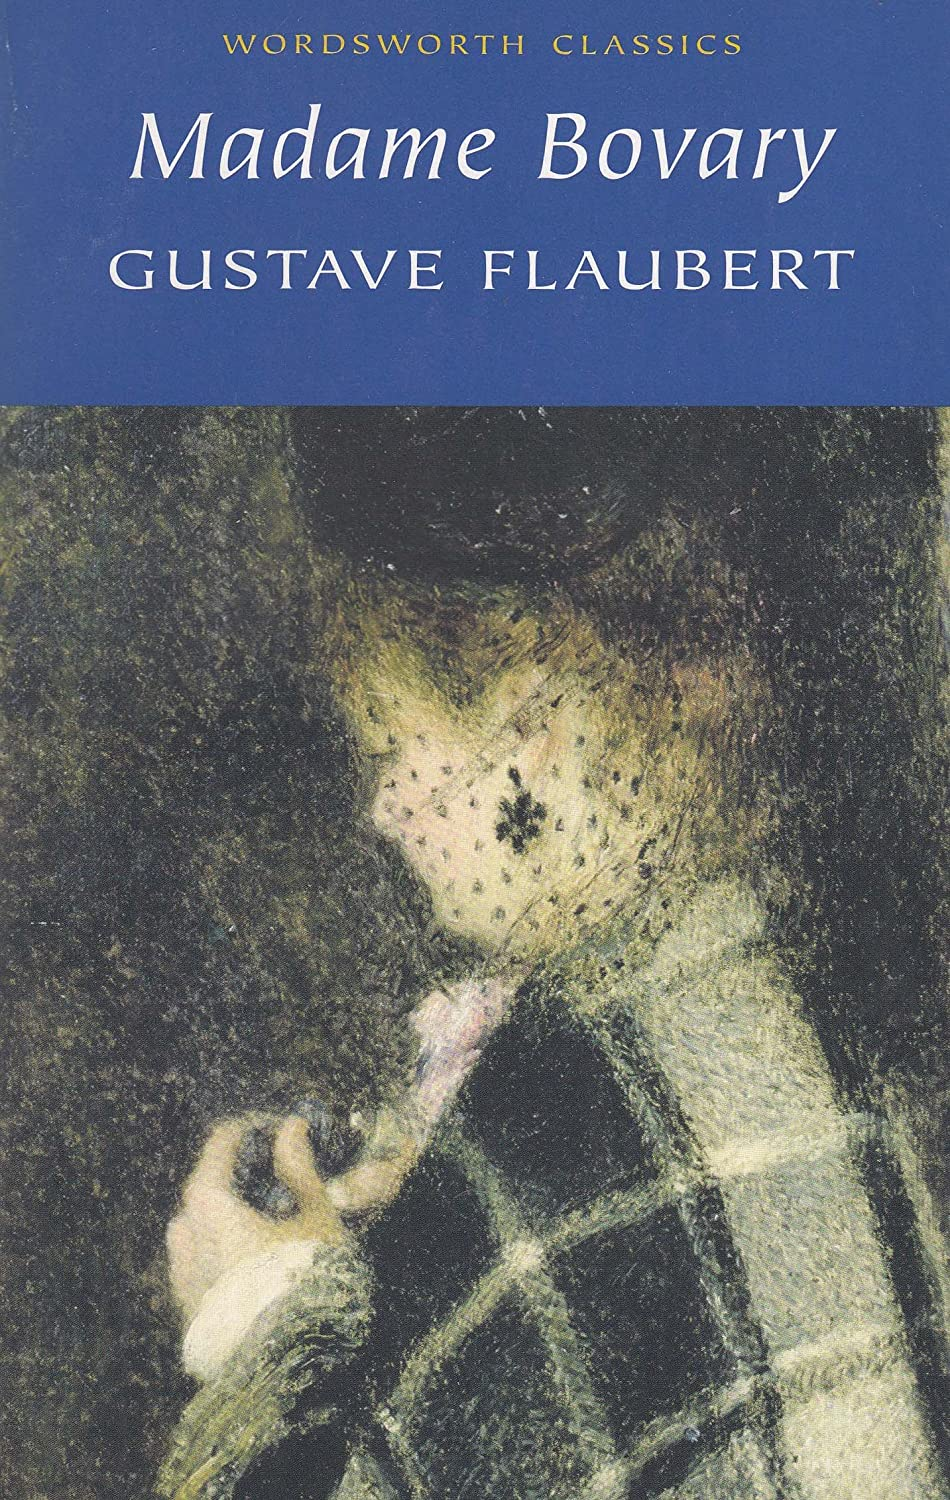 gustave flauberts madame bovary essay Madame bovary gustave flaubert buy critical essays theme and intent of madame bovary gustave was a sensitive and quiet boy.